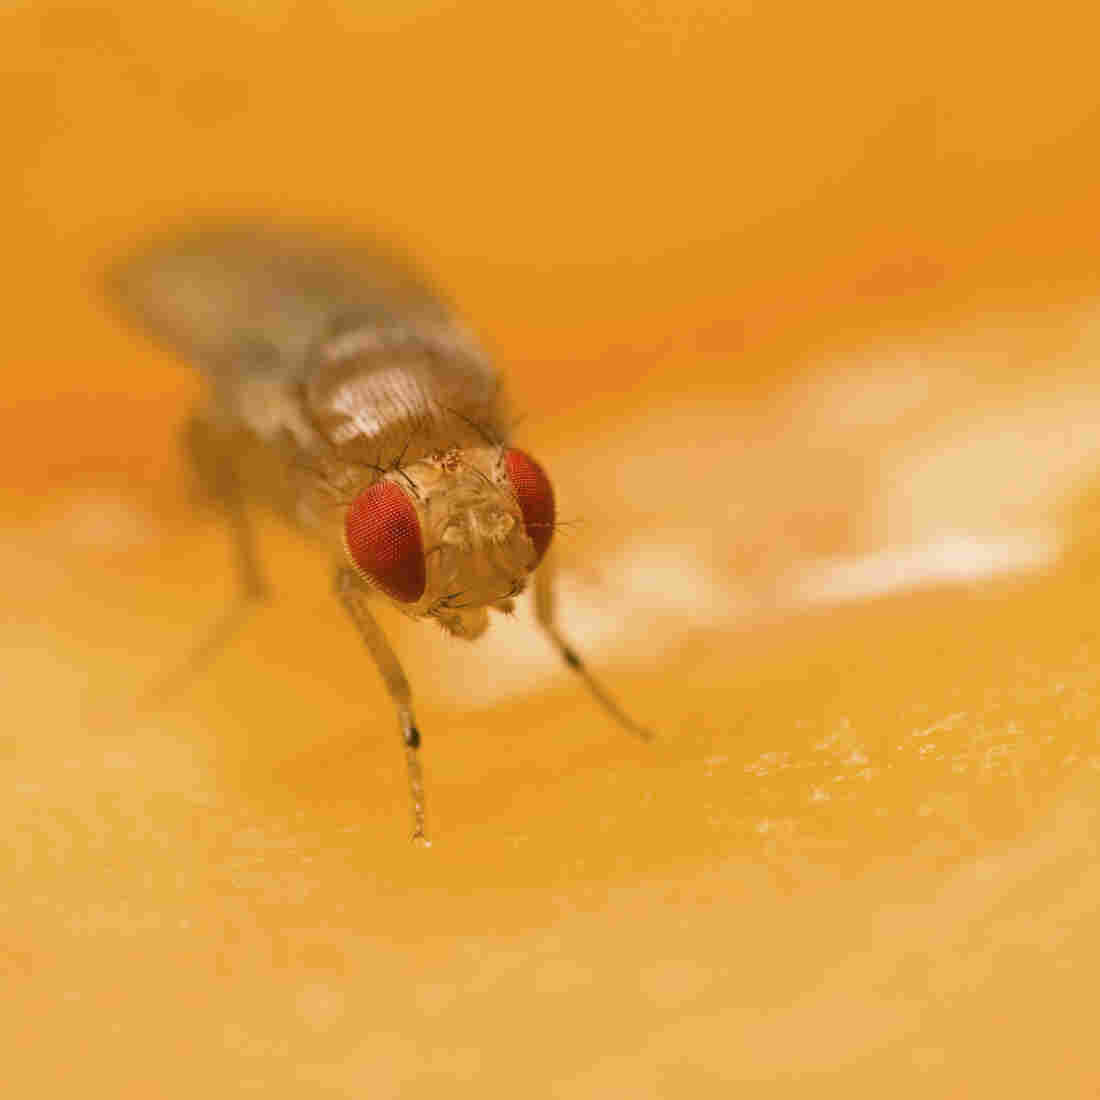 Fruit Fly Nose Says Steer Clear Of Deadly Food; Human Nose Not So Reliable